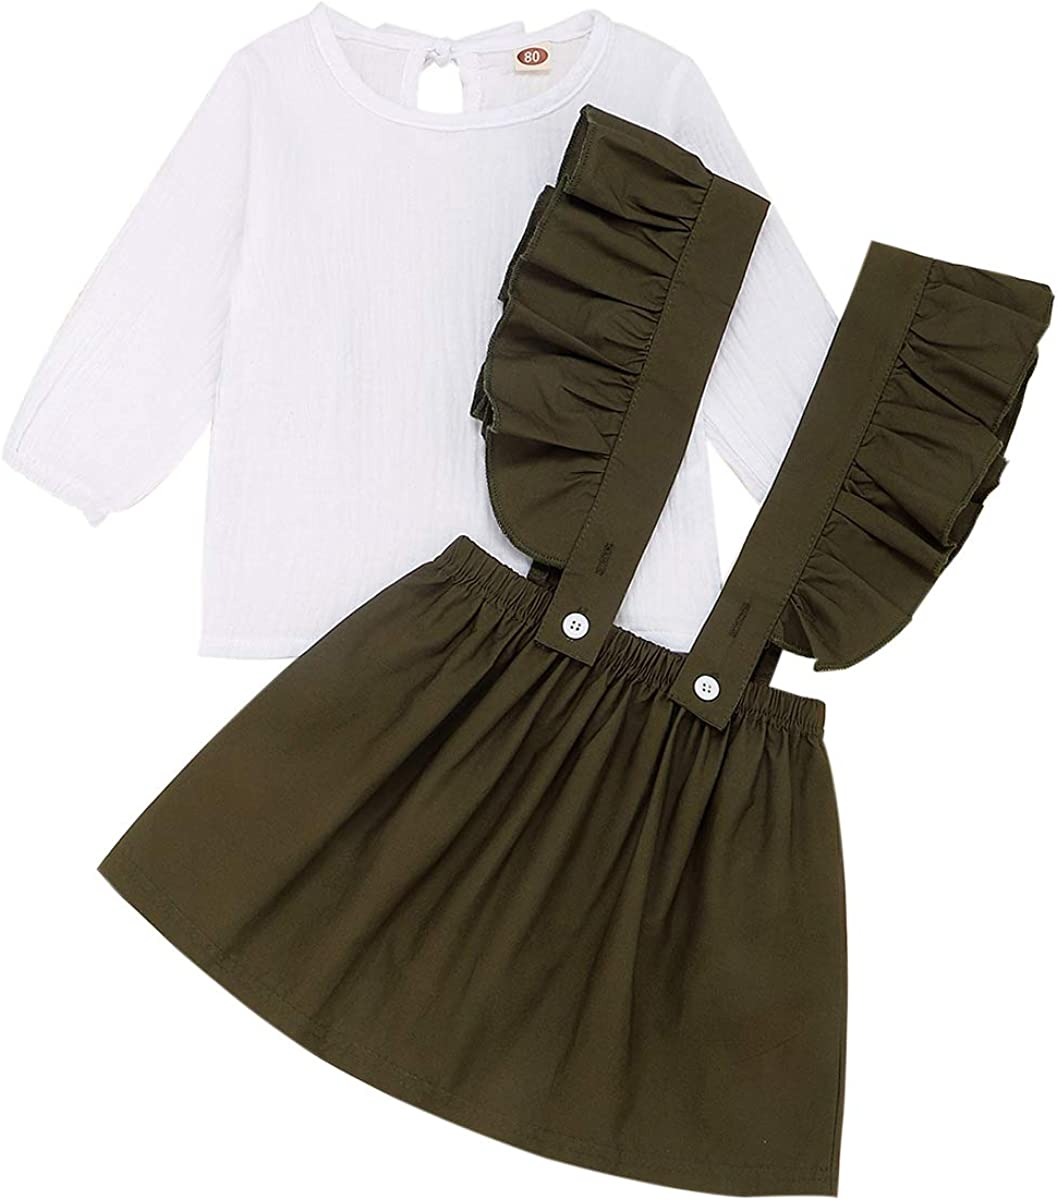 Baby Girl Skirts Sets Cotton Linen Long Sleeve Top+Ruffle Strap Suspender Dress Fall/Winter Outfits Set Clothes